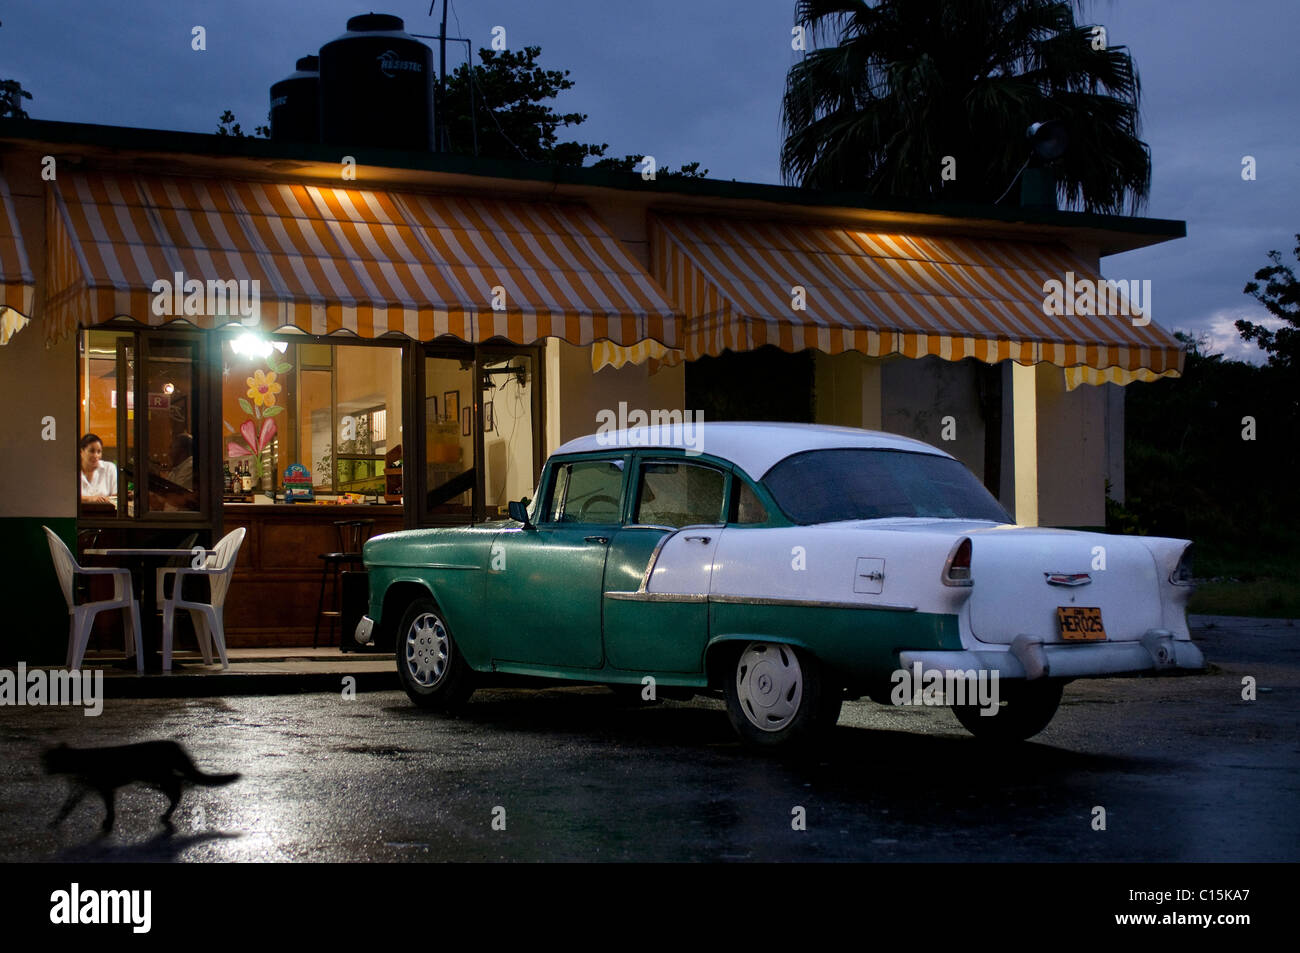 Classic american car outside bar, Matanzas, Cuba - Stock Image